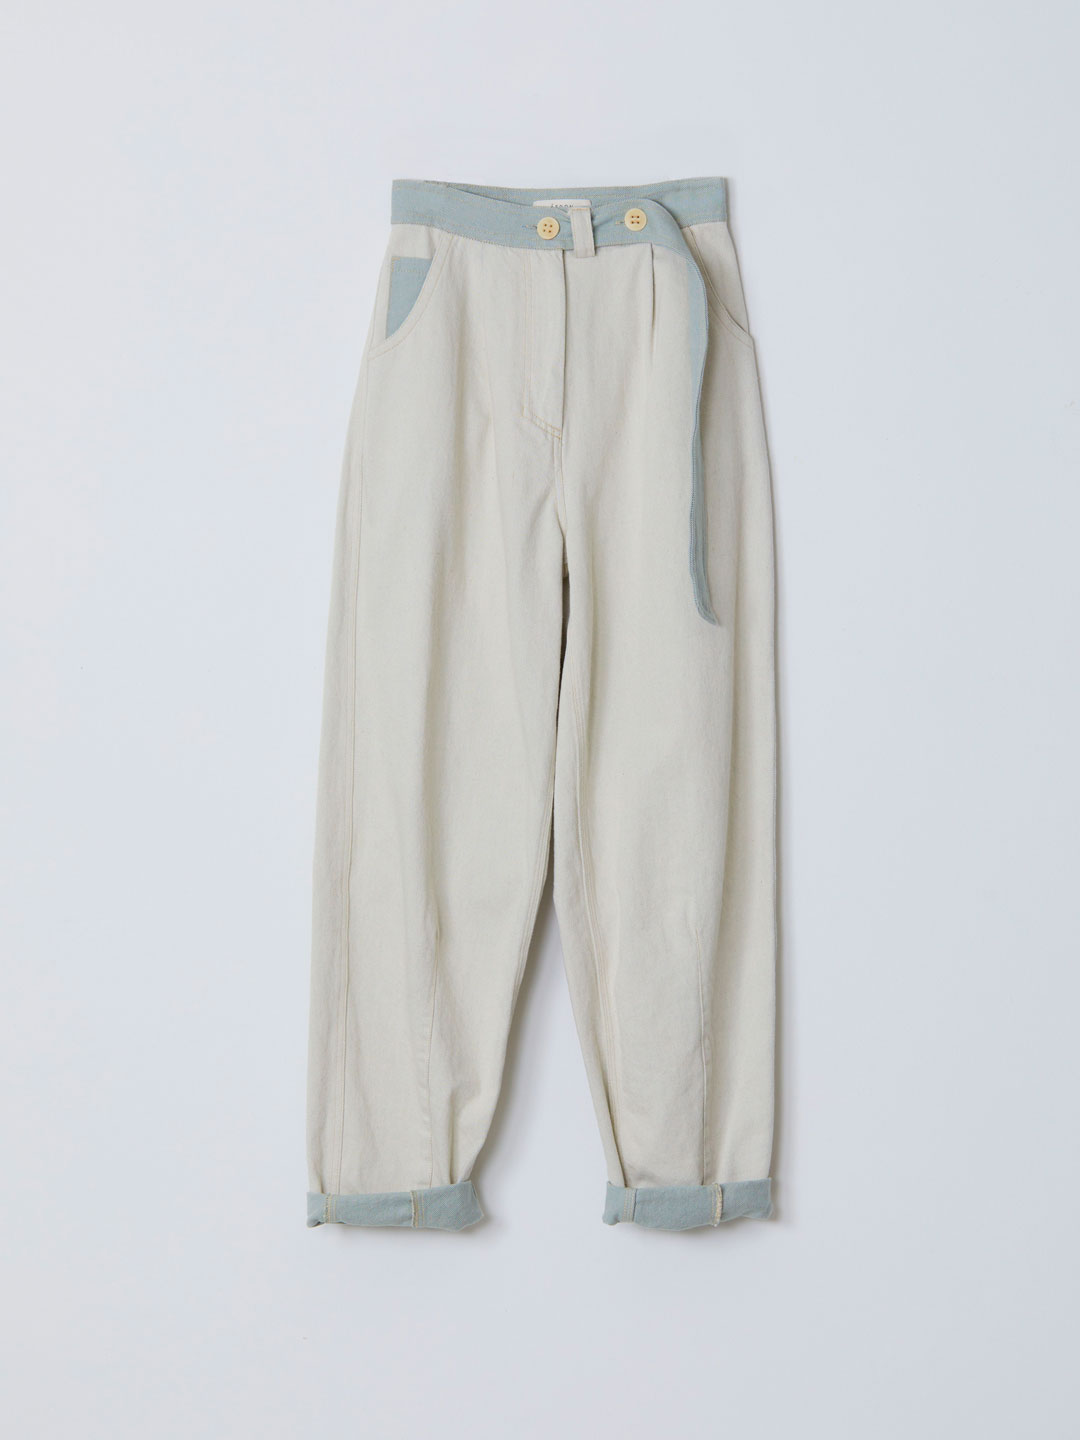 COPPELIA / Belted Utility Jeans - Light Blue